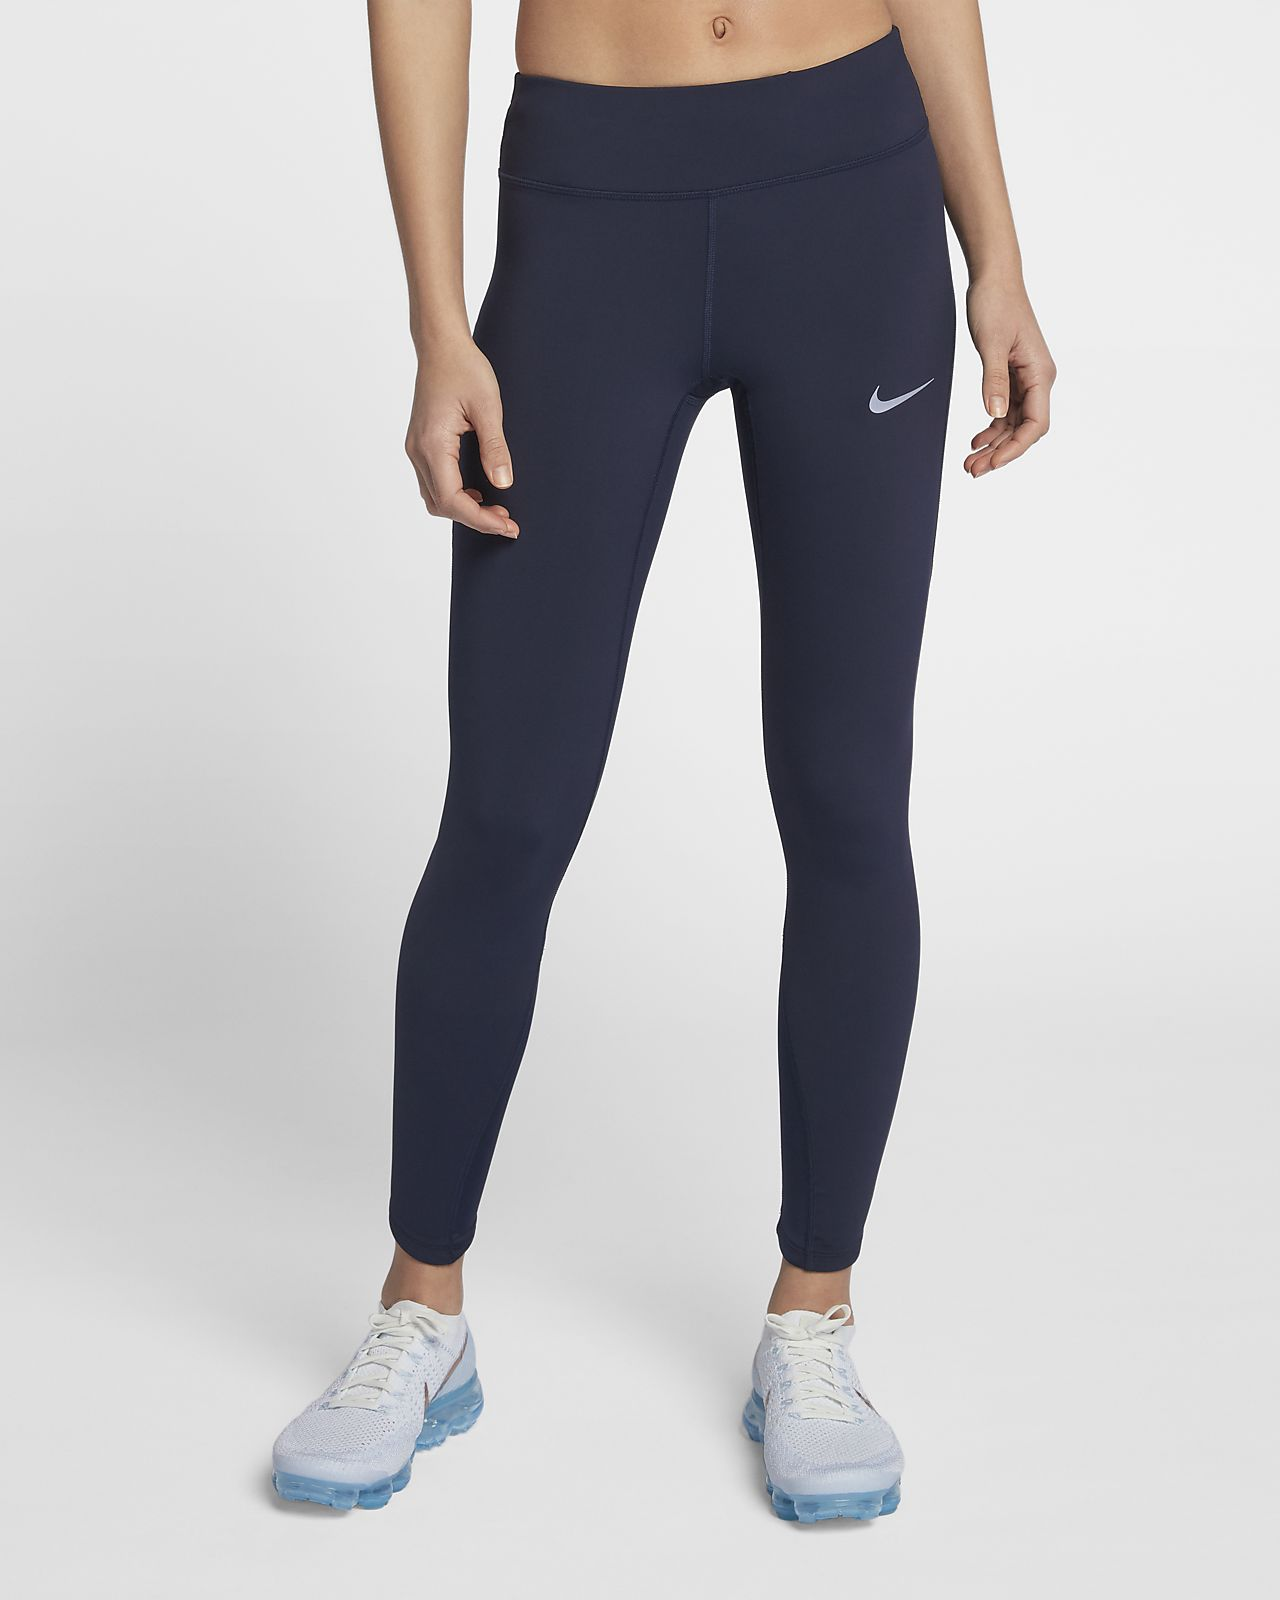 2c1f10609d Nike Epic Lux Women s Mid-Rise Running Tights. Nike.com GB